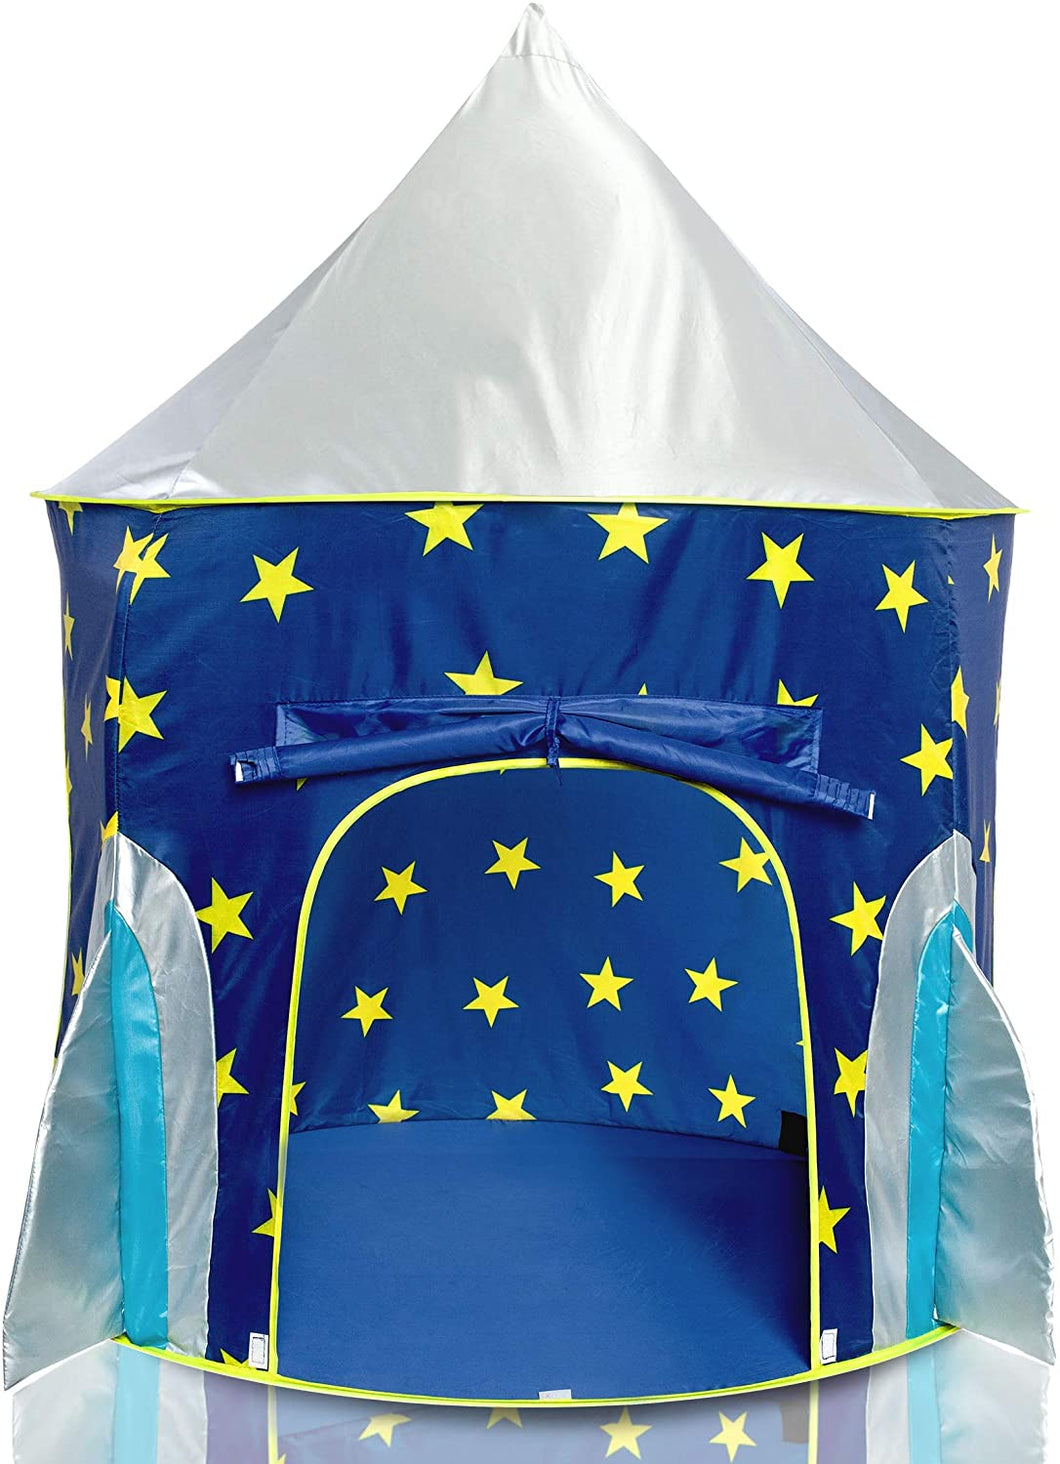 JuniorFX Rocket Pop Up Play Tent With Carry Bag